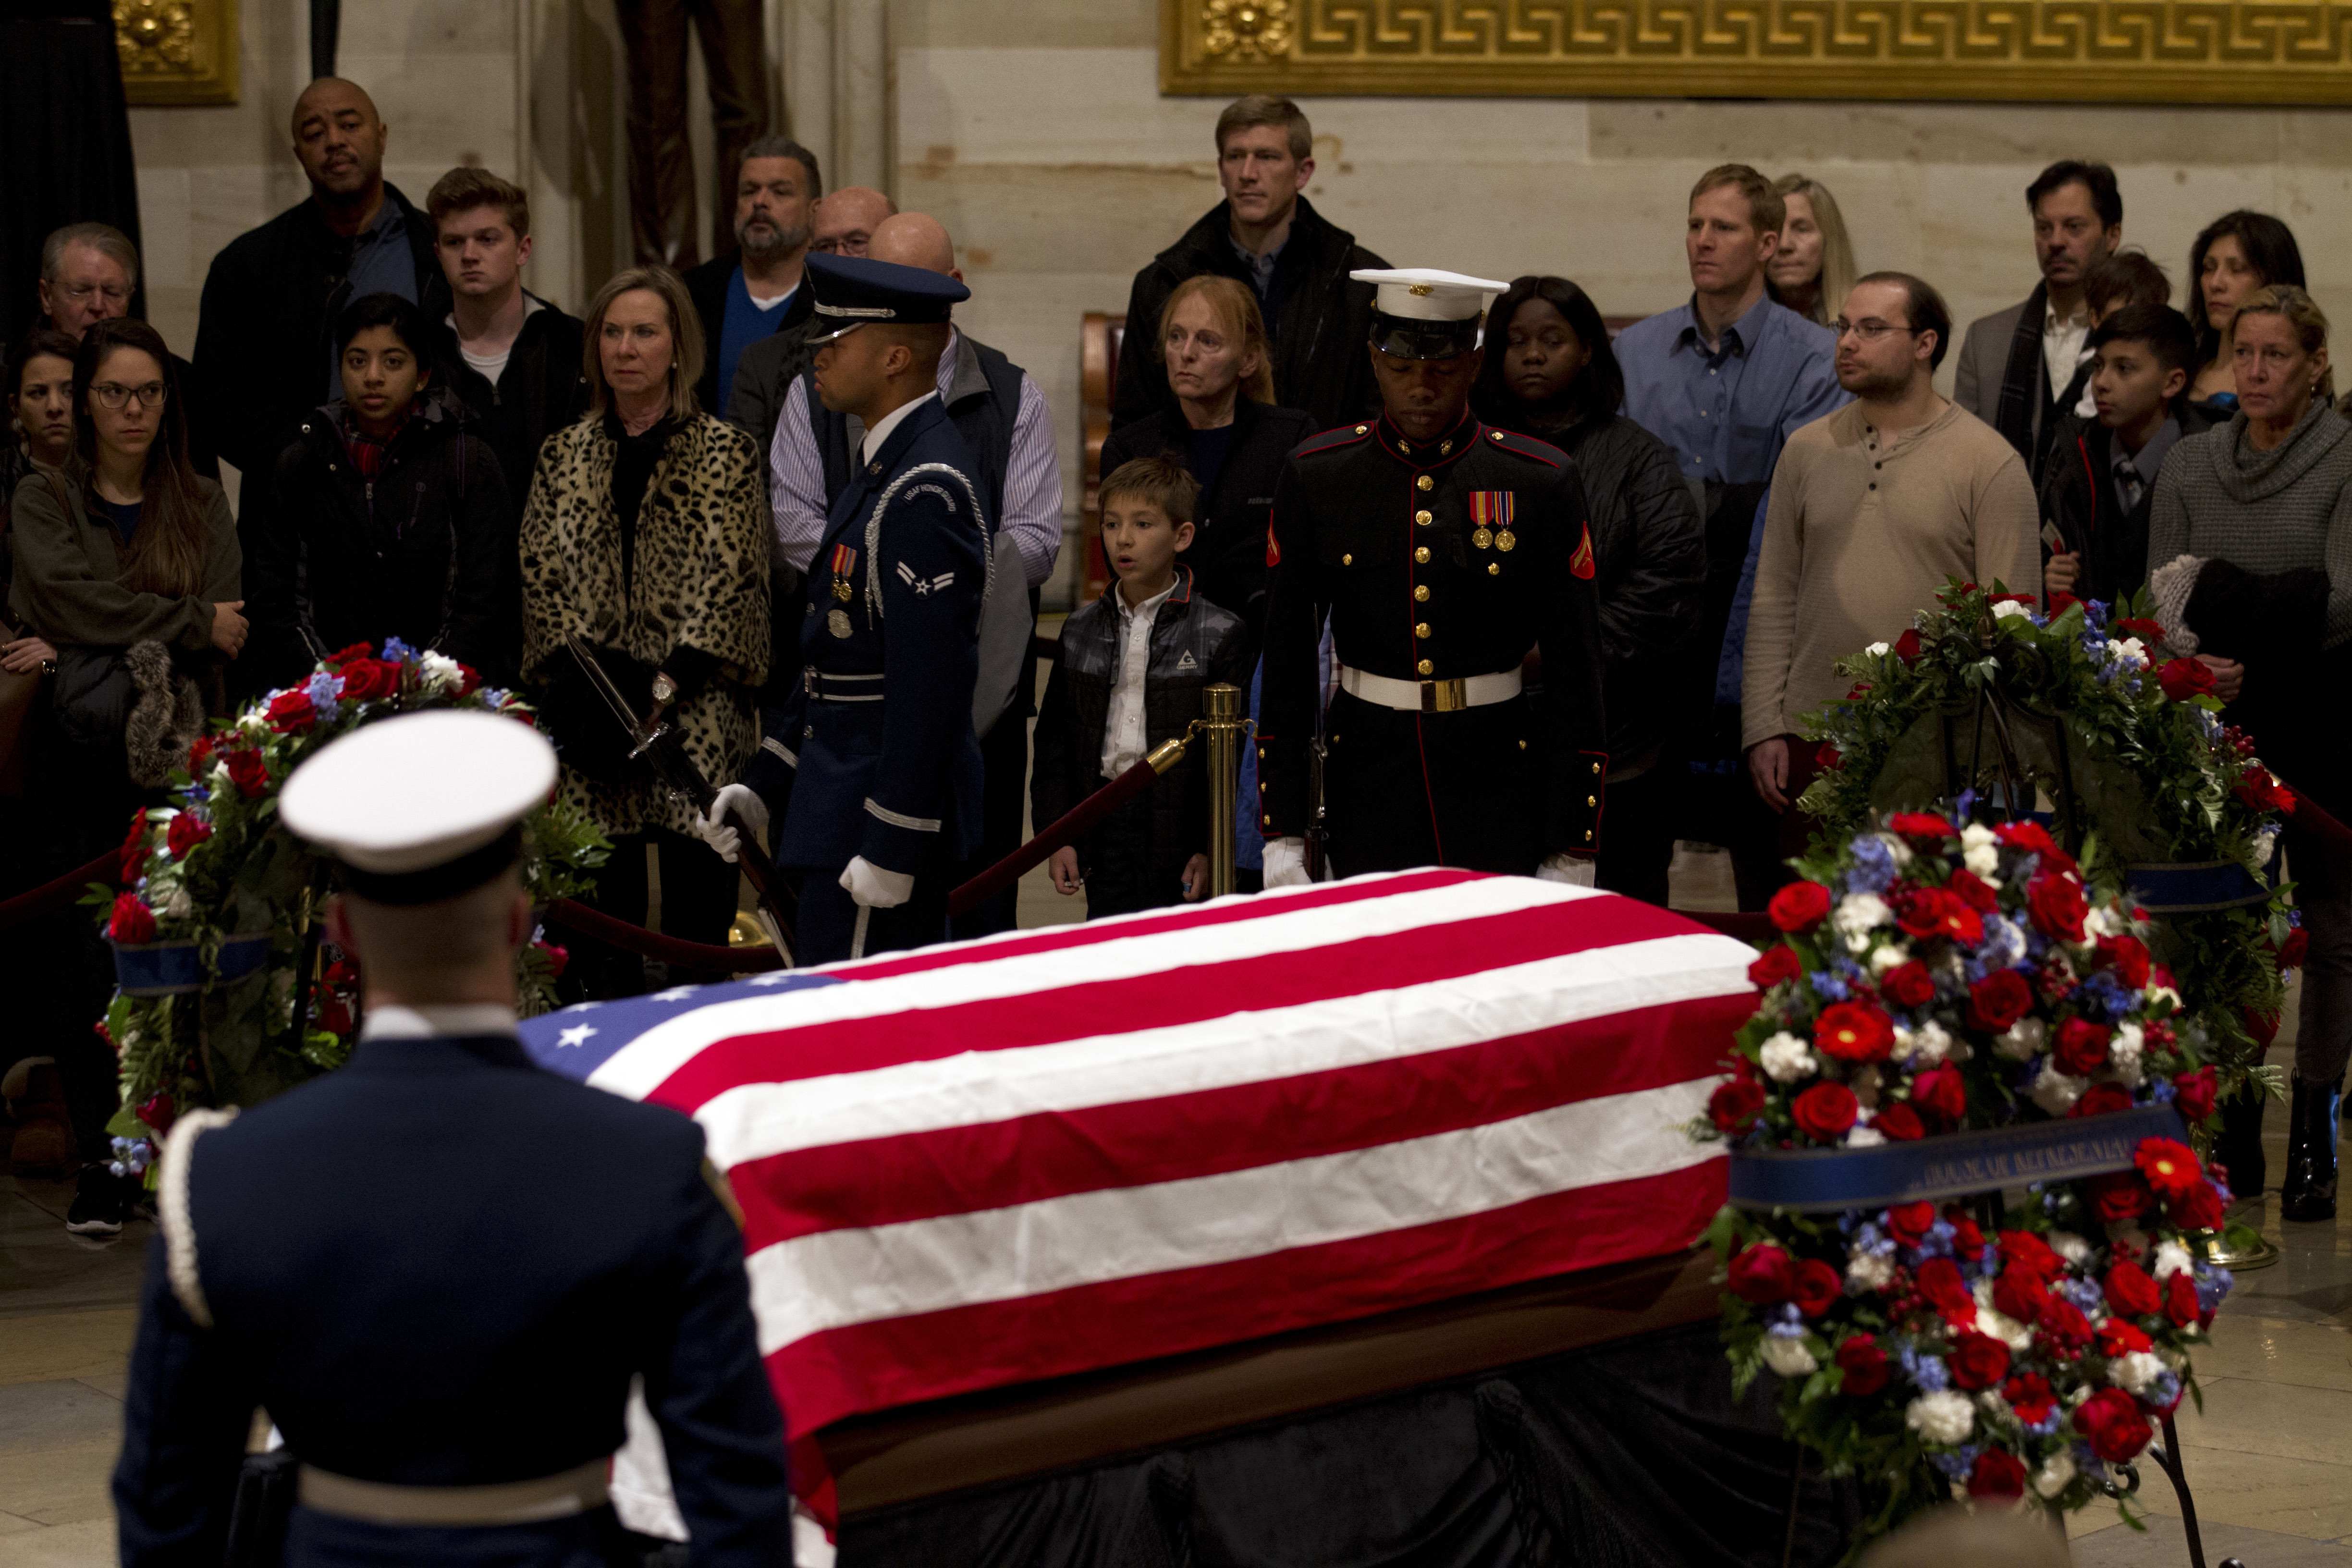 Visitors pay their respects at the flag-draped casket of former President George H.W. Bush, as he lies in state in the Capitol Rotunda in Washington, Wednesday, Dec. 5, 2018. (AP Photo/Jose Luis Magana)